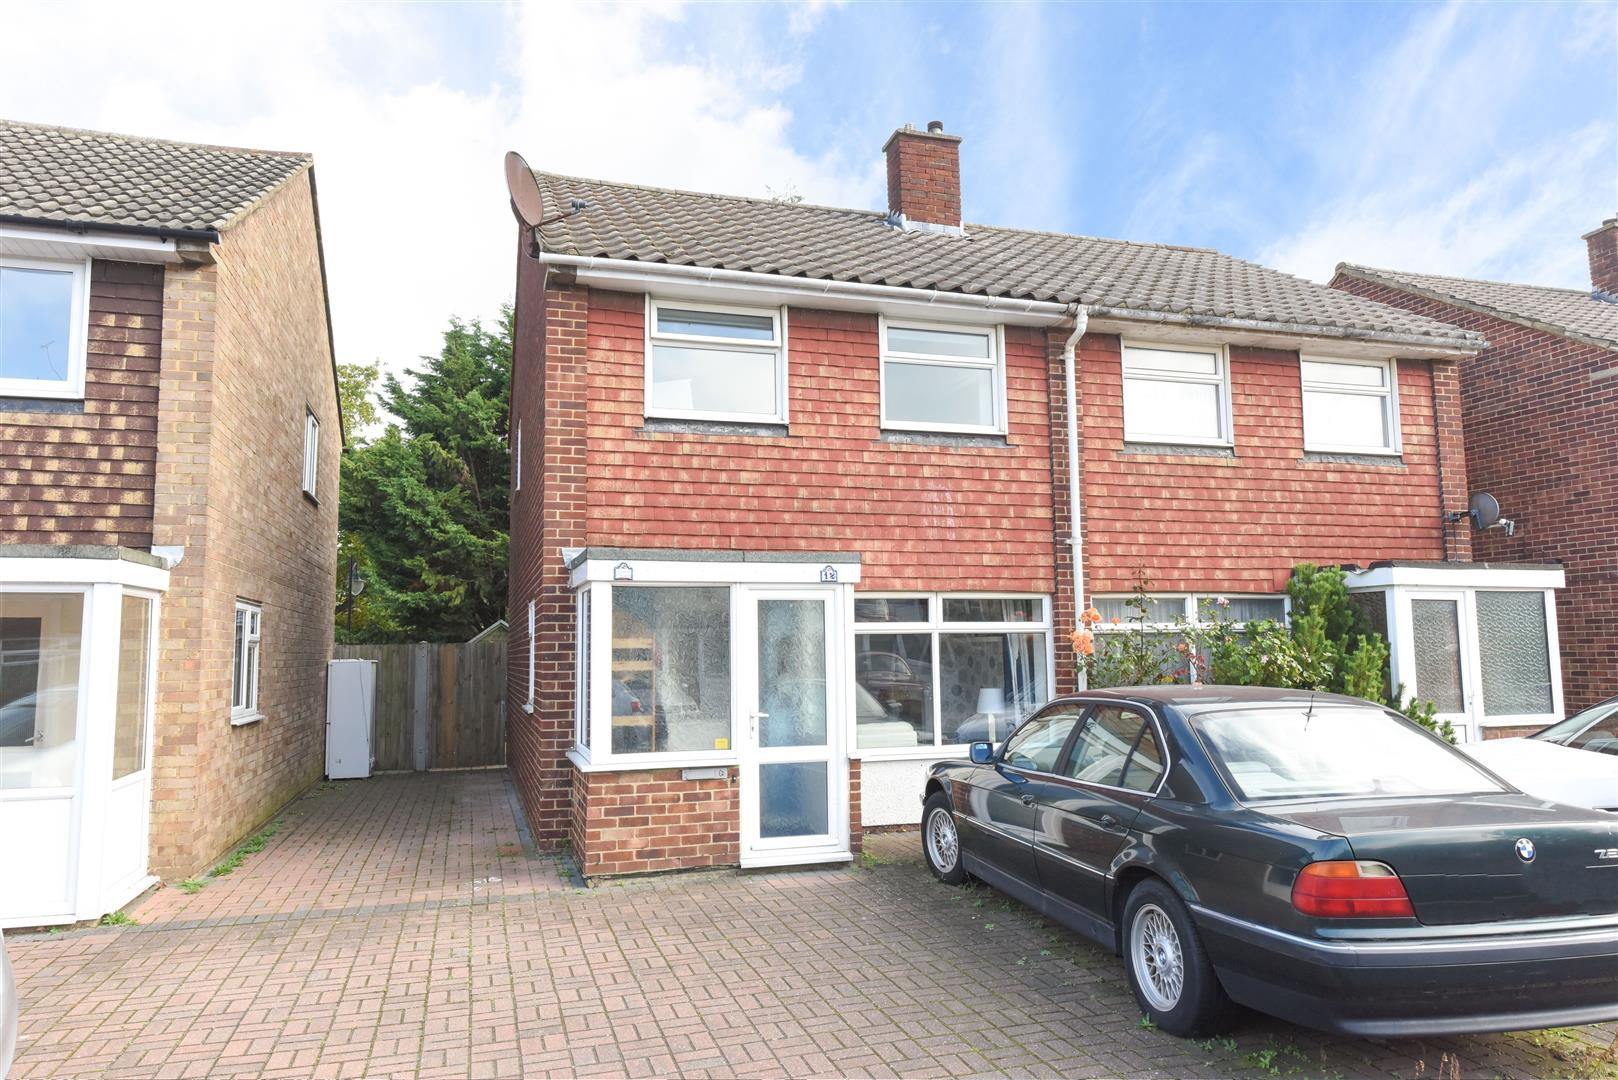 2 Bedrooms House for sale in Broad Close, Hersham, Walton-On-Thames